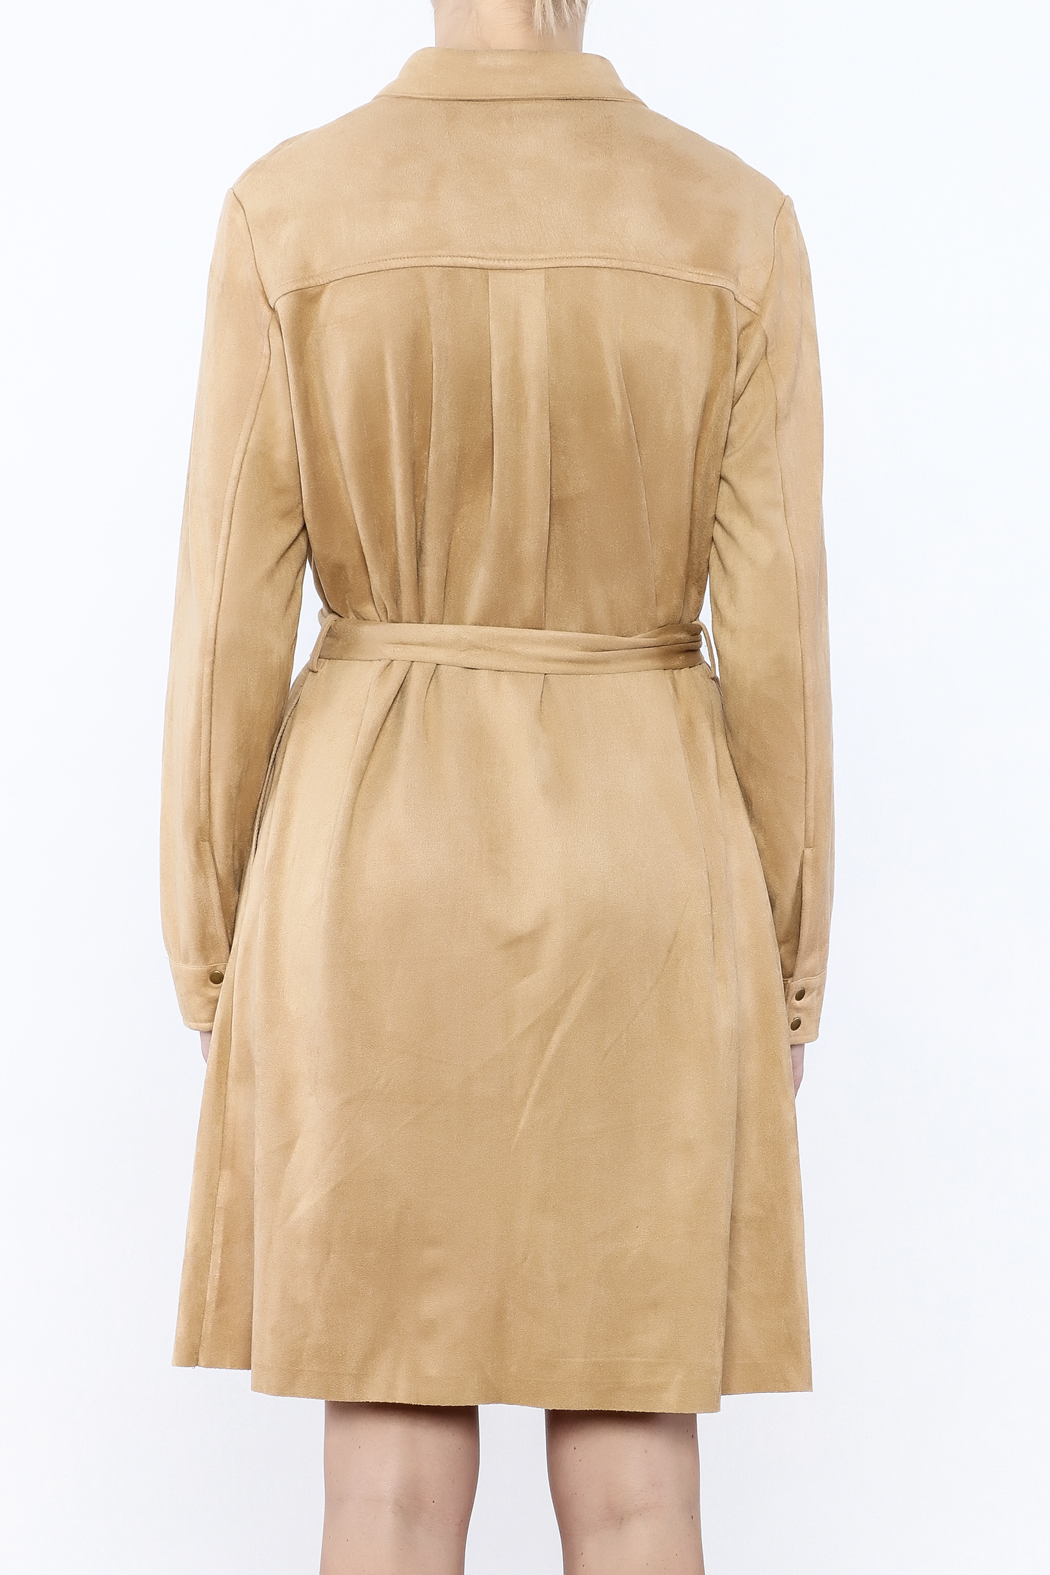 JOH Faux Suede Button-Down Dress - Back Cropped Image